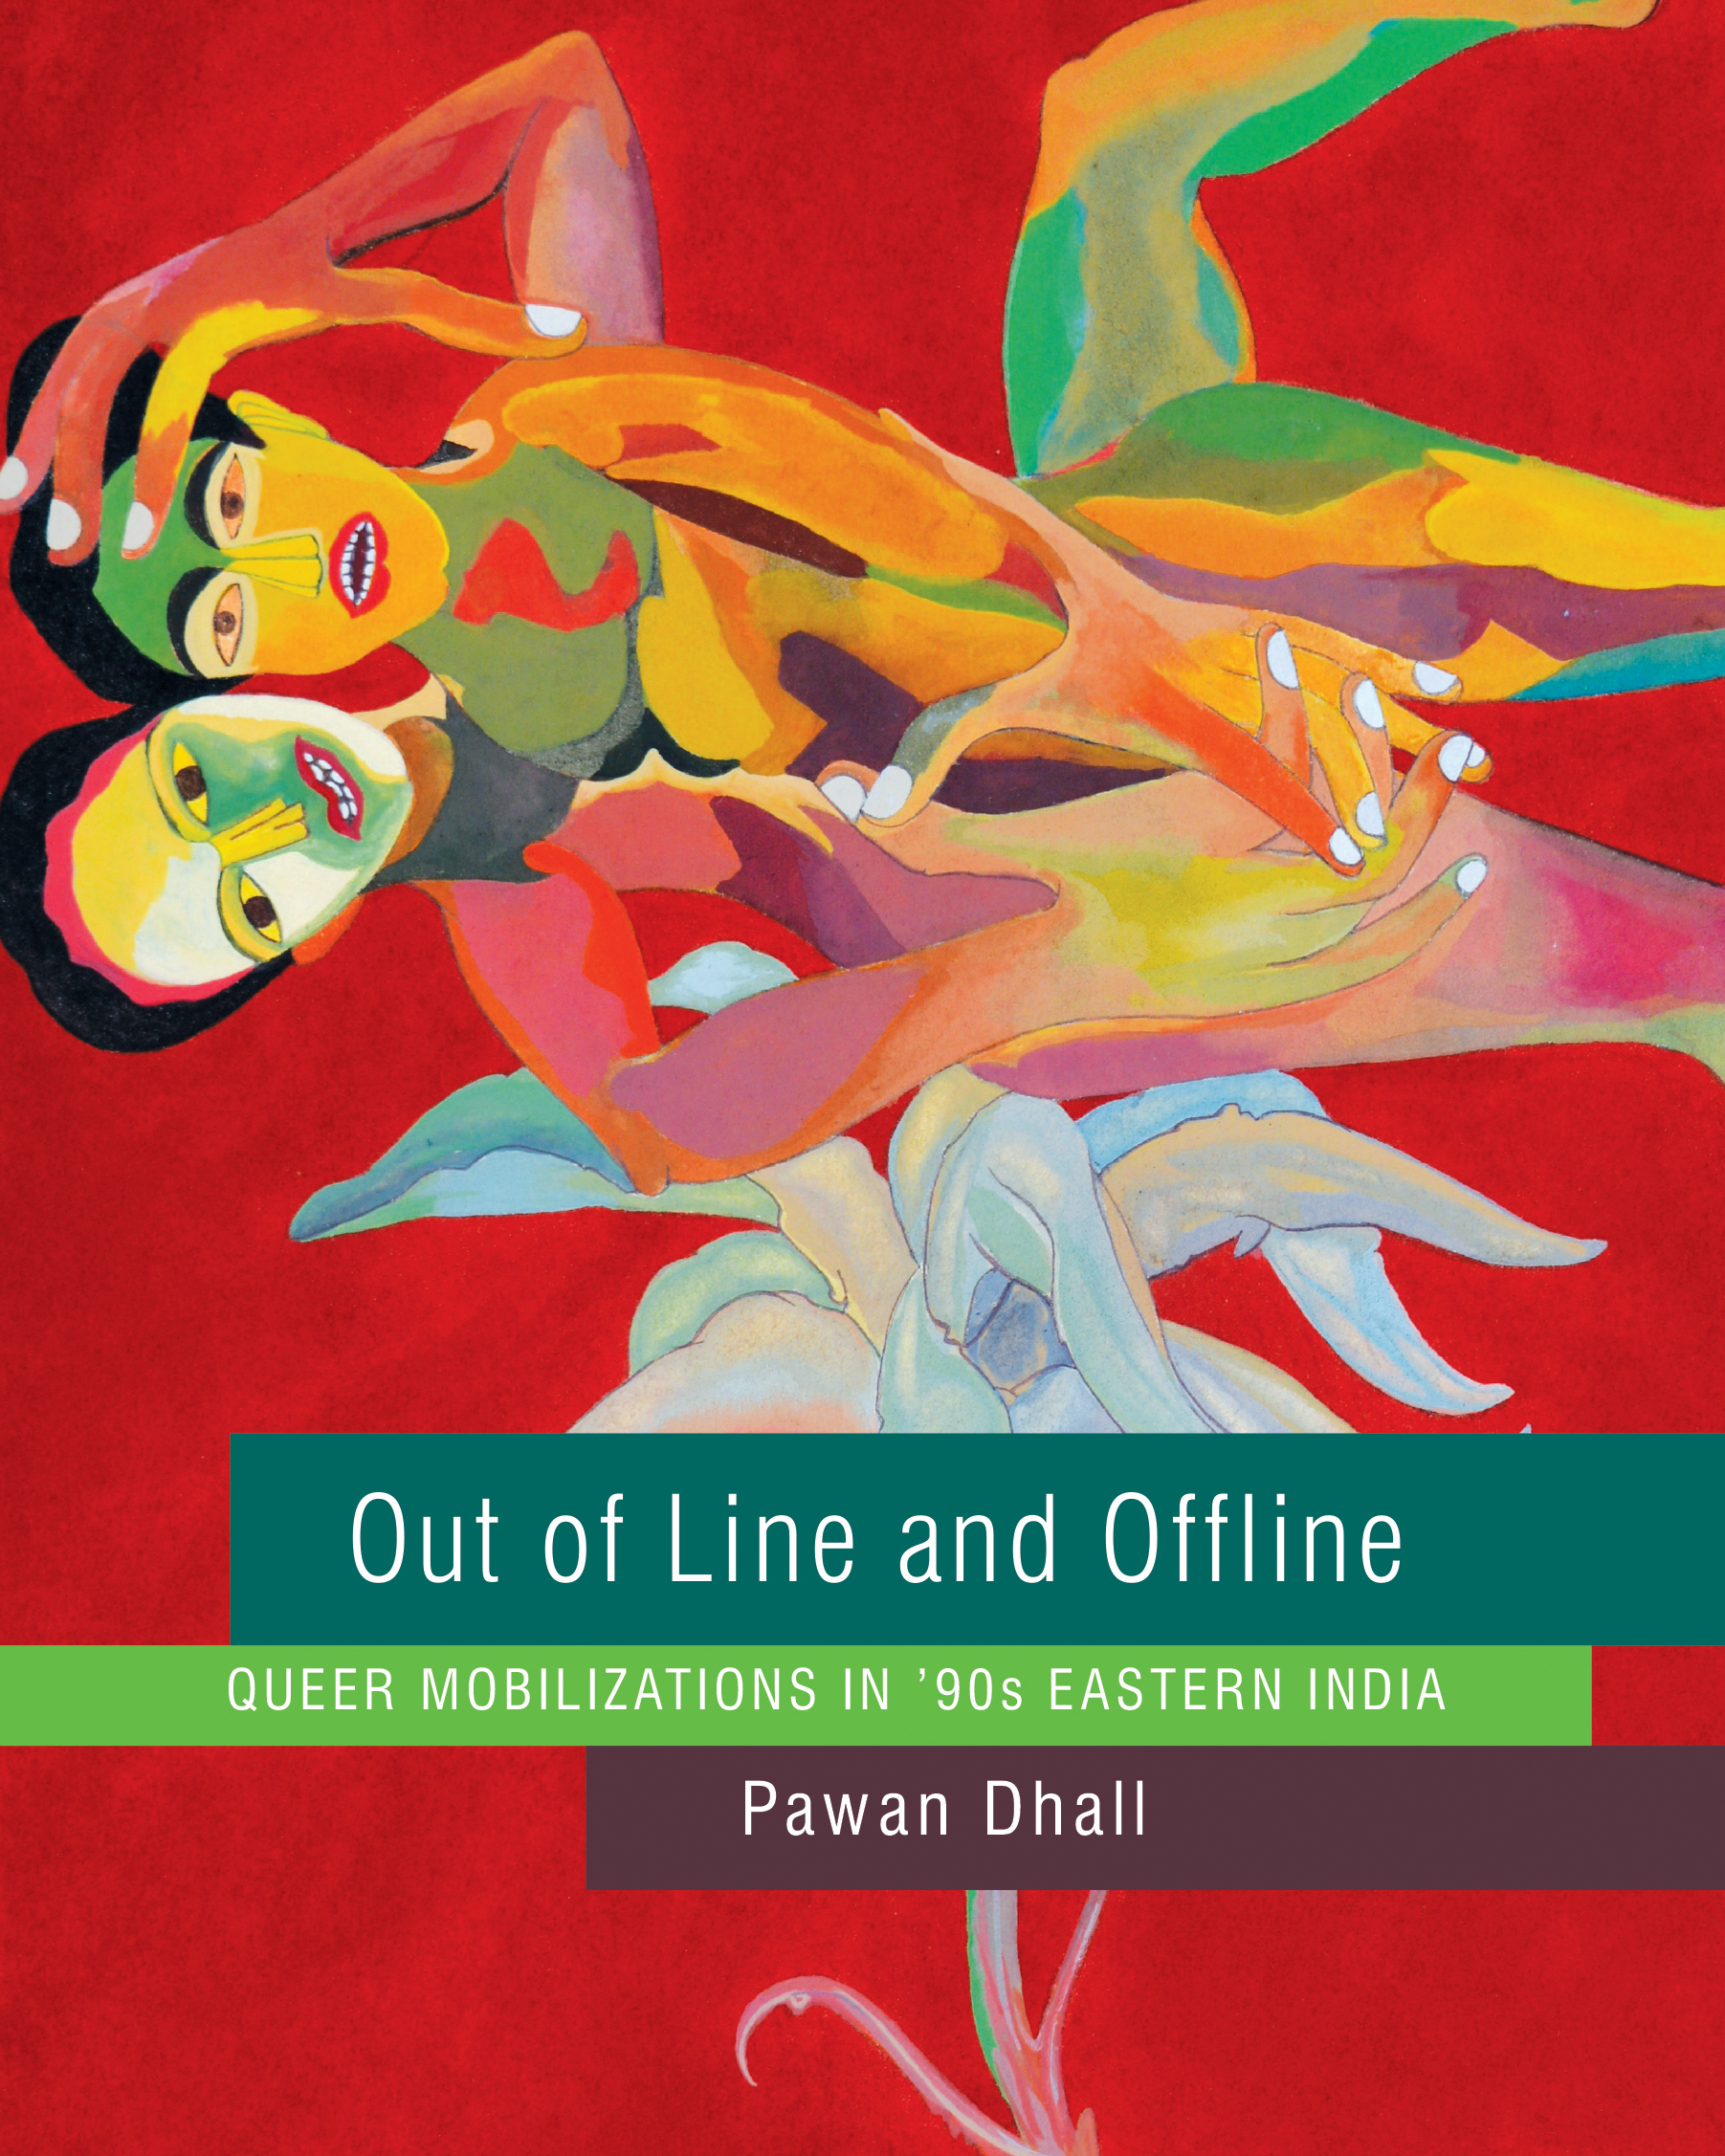 Out of Line and Offline by Pawan Dhall | Seagull Books